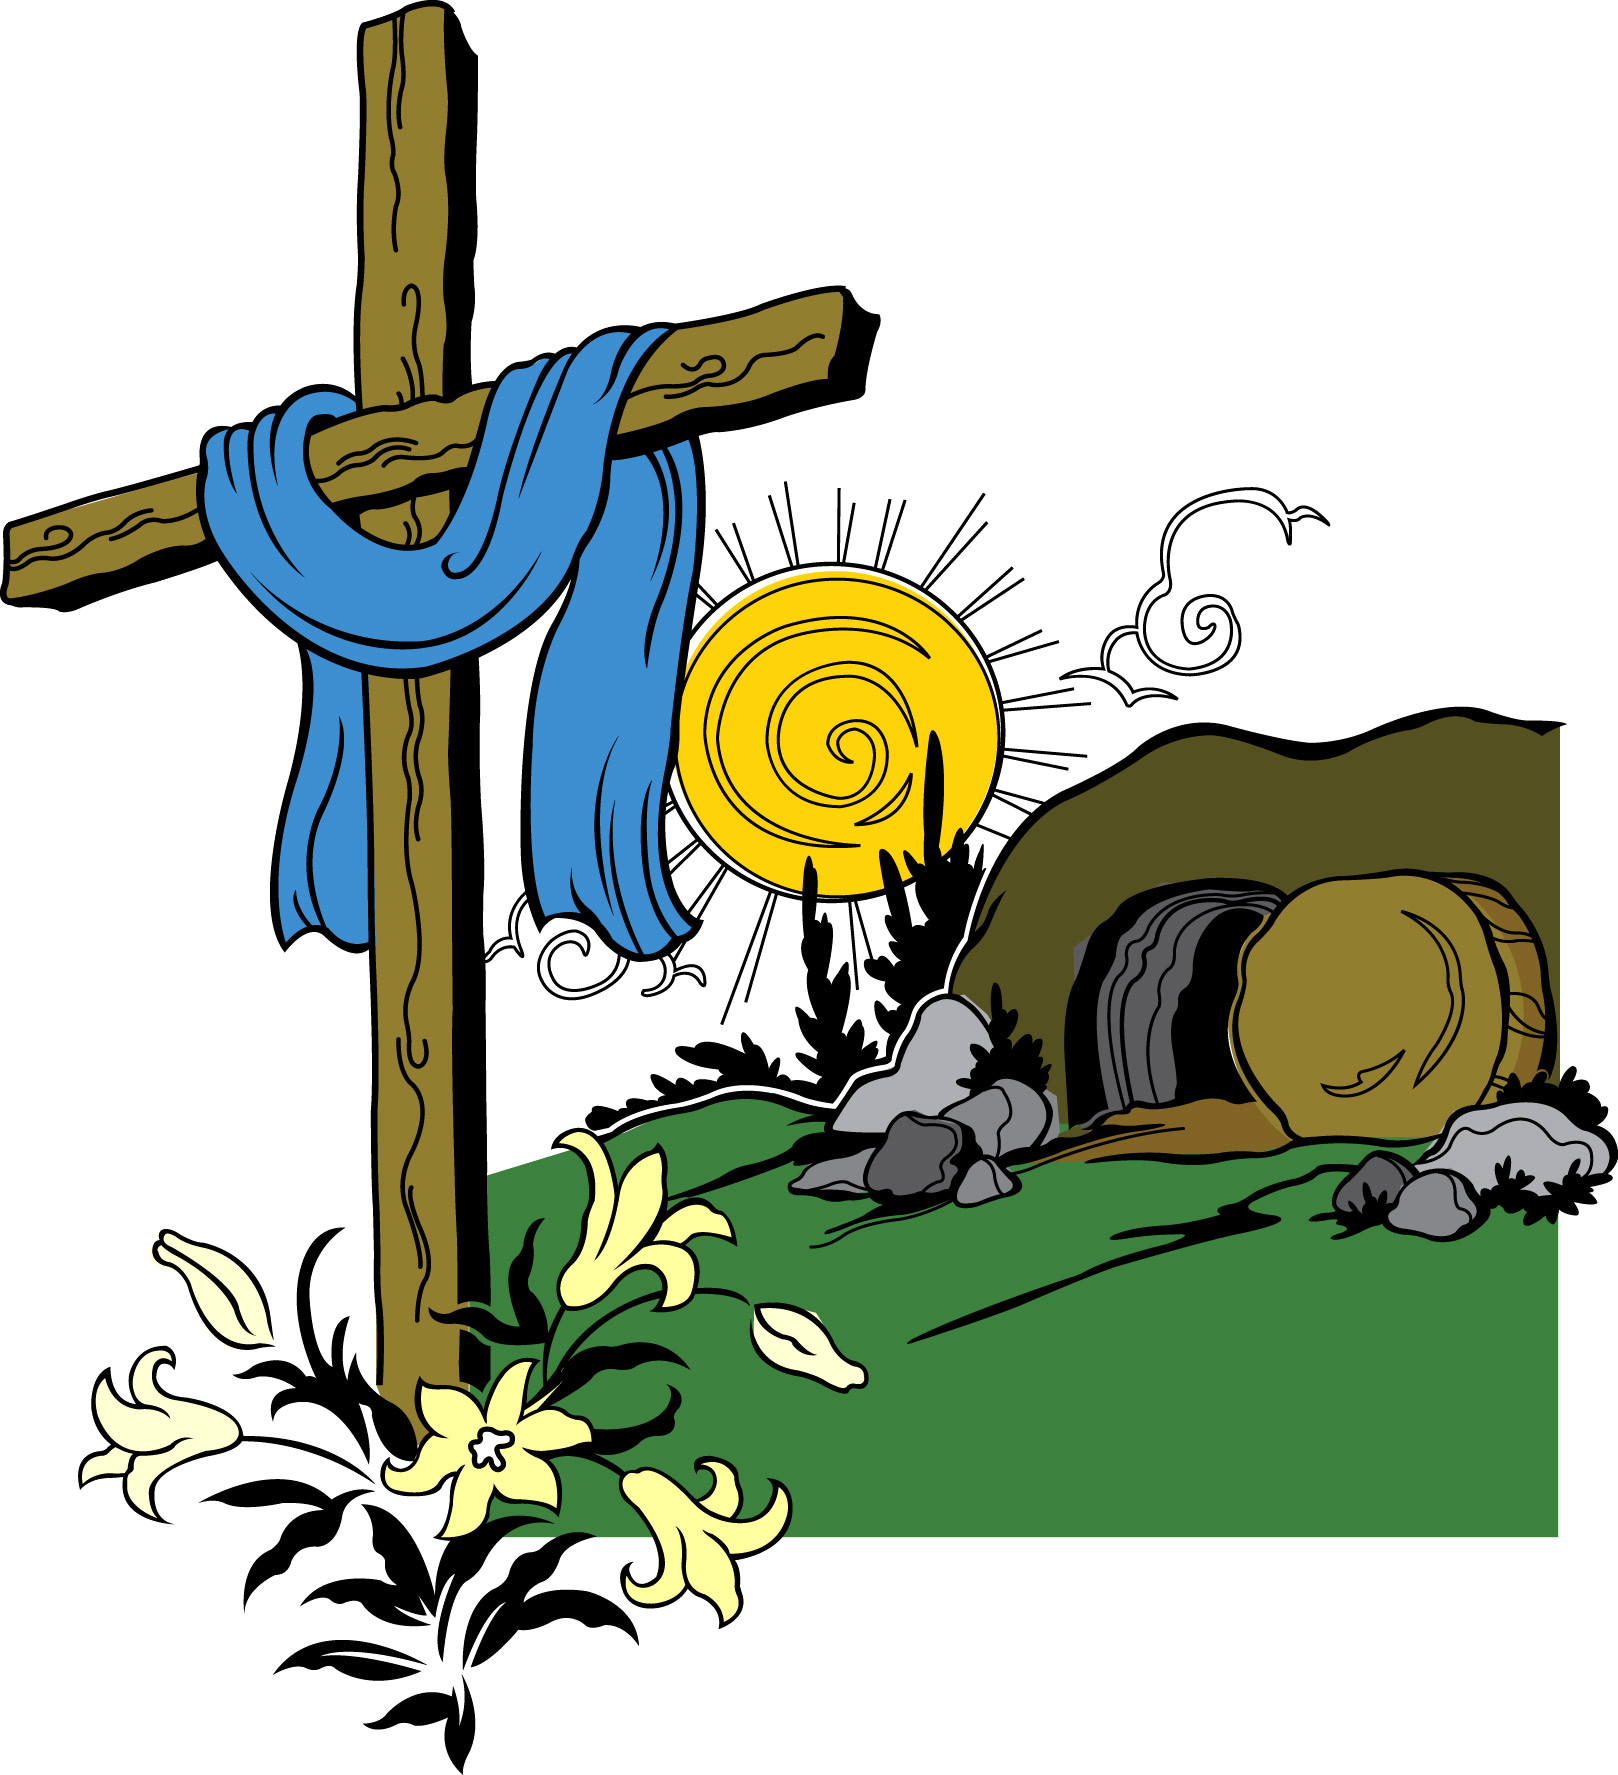 Free Cave Clipart jesus tomb, Download Free Clip Art on Owips.com.